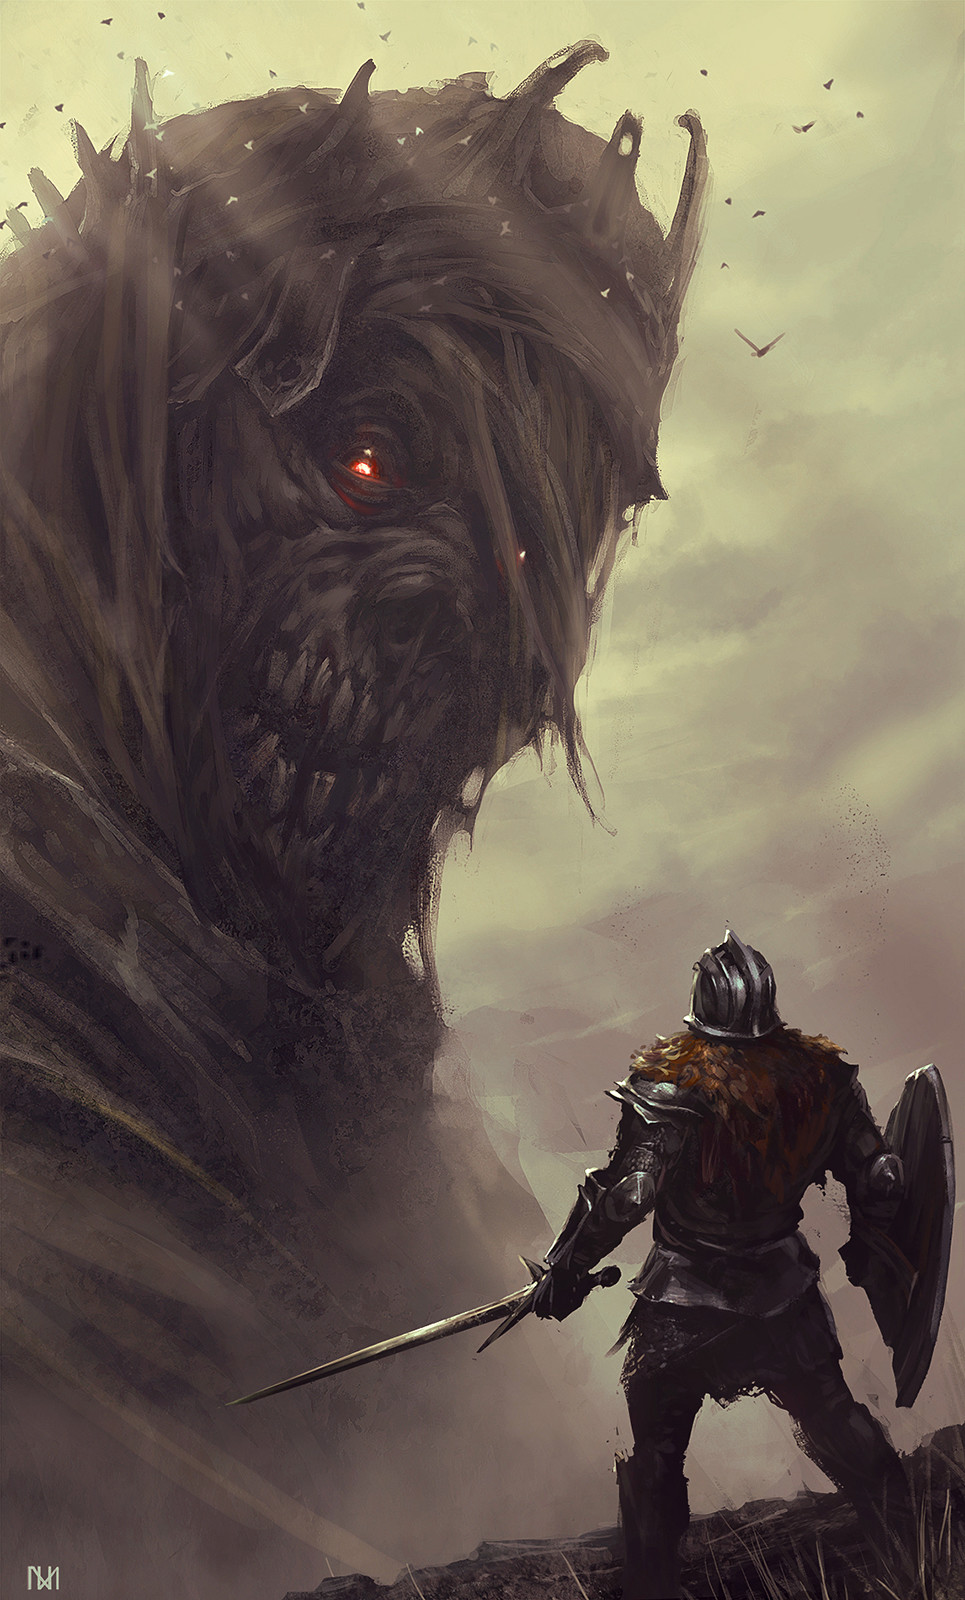 Nagy norbert dark souls fan art